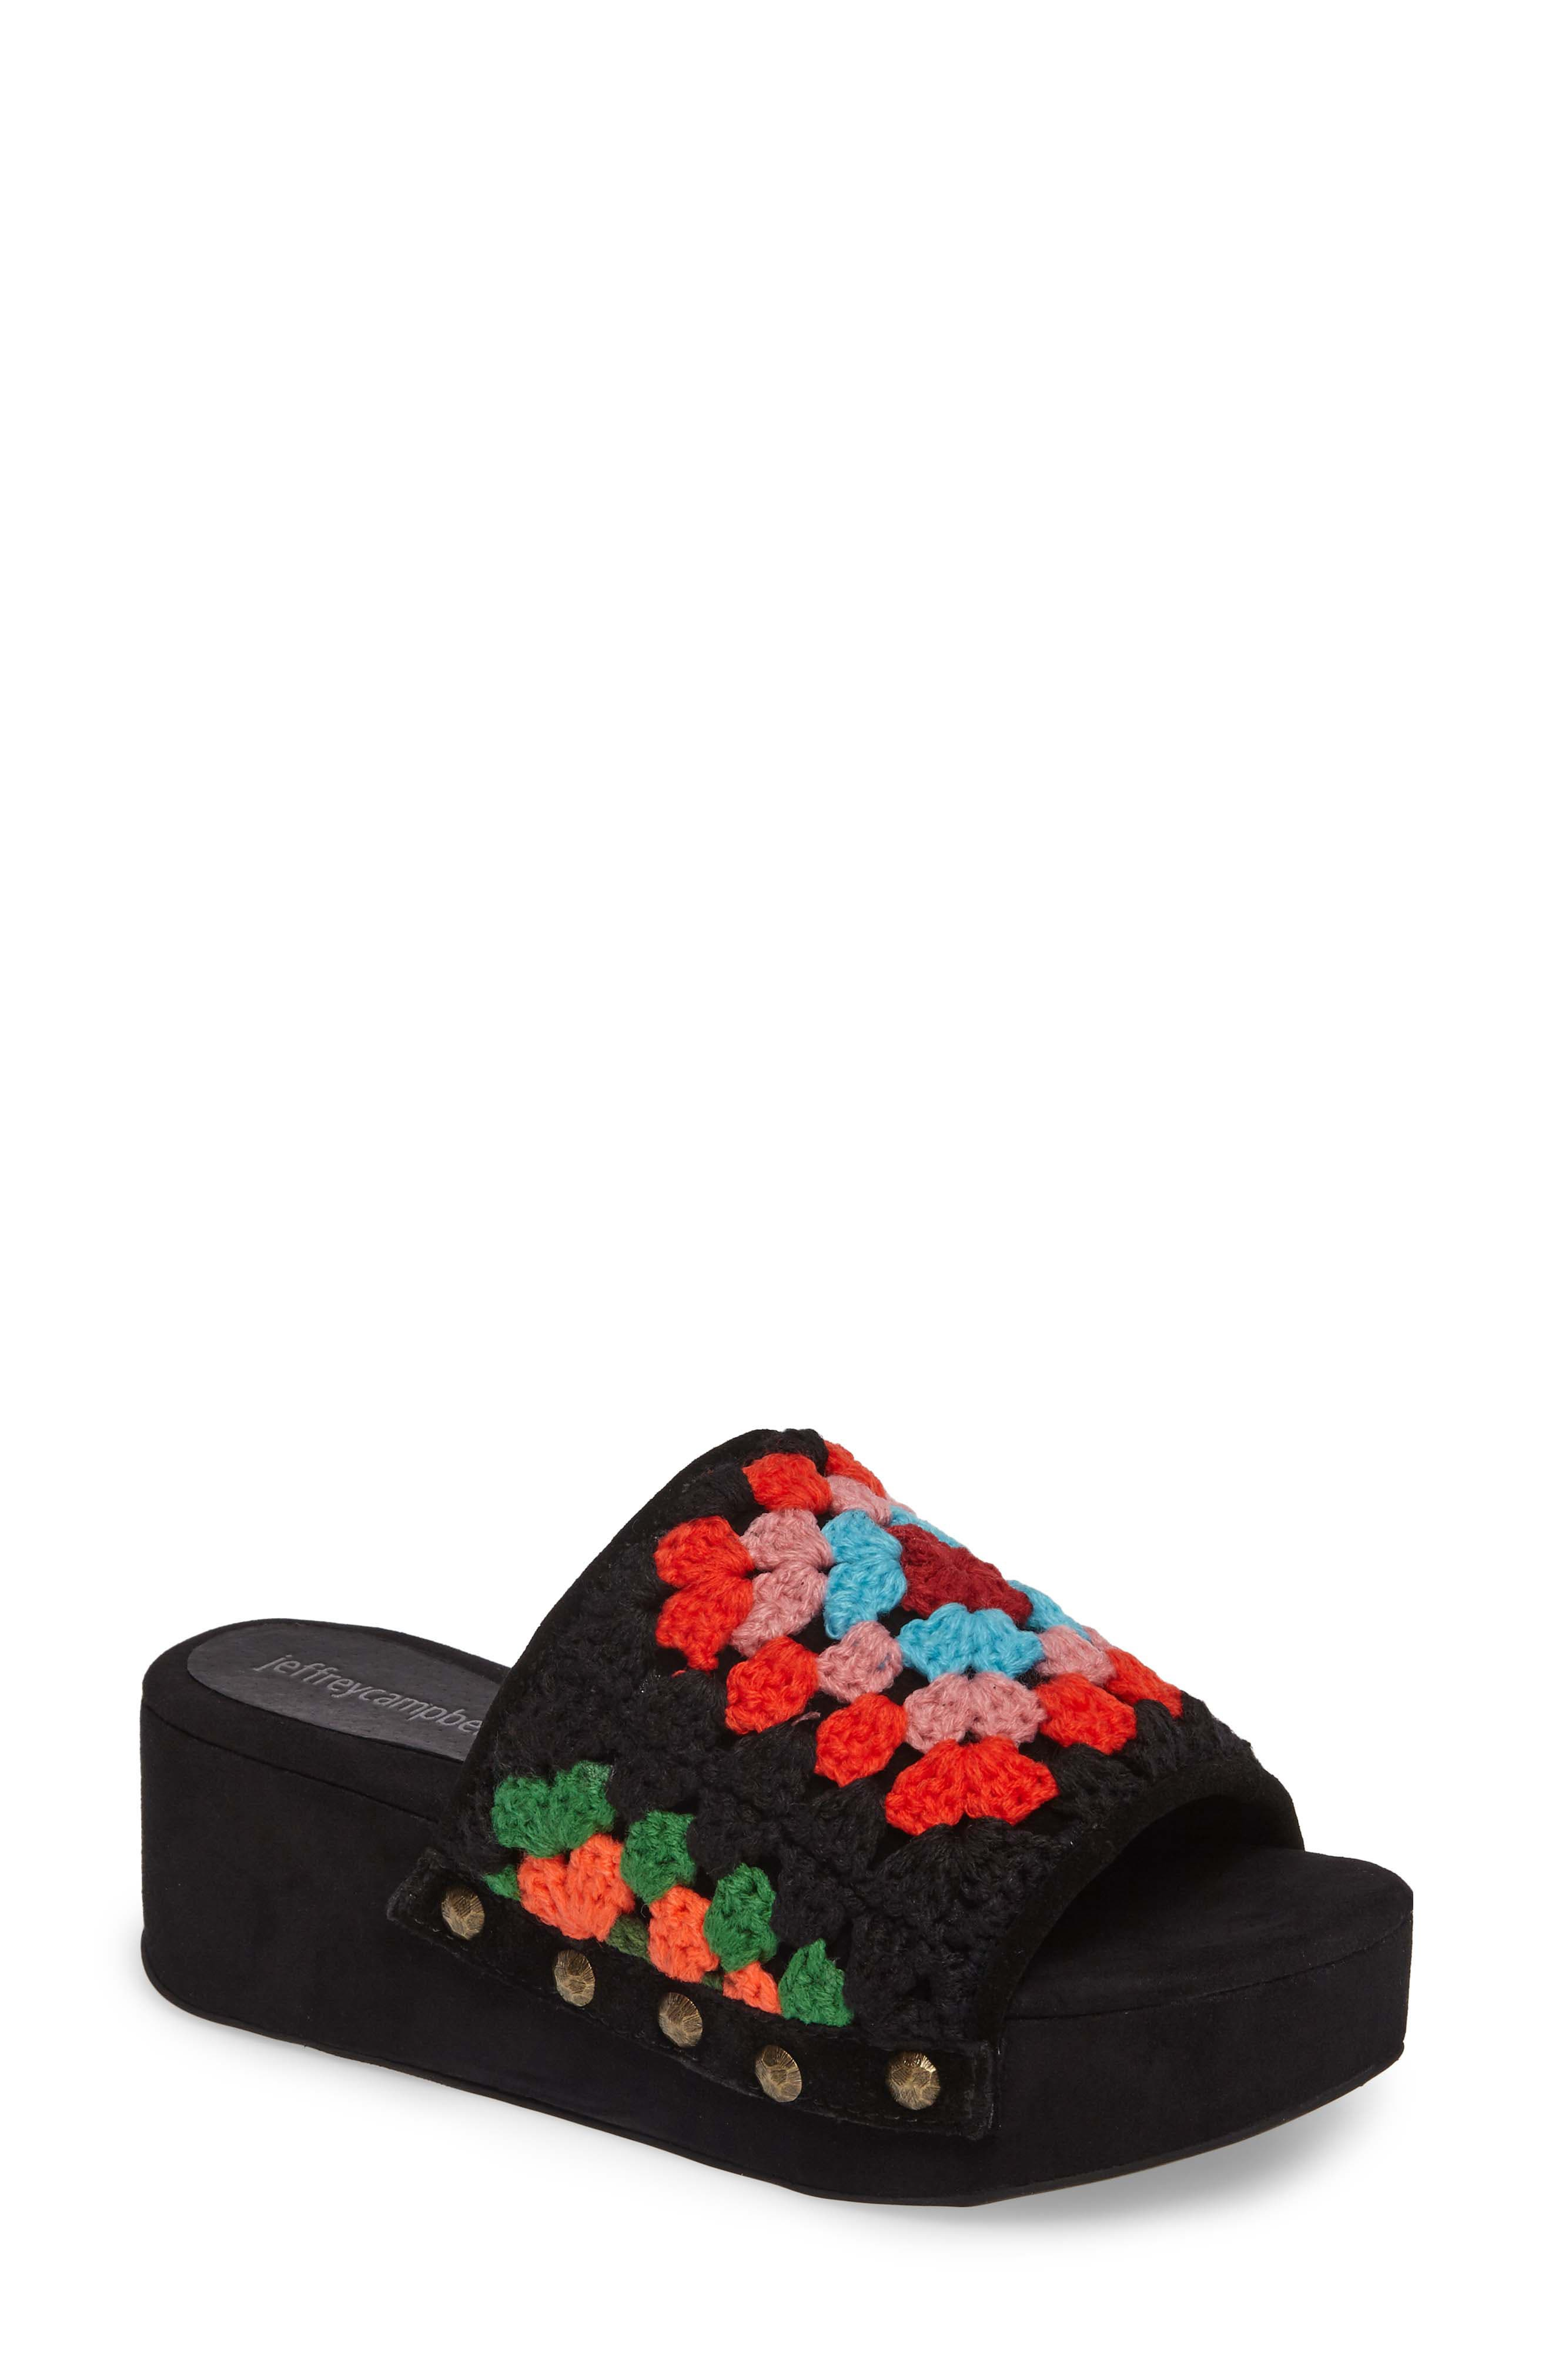 Nonna Crocheted Platform Slide Sandal,                             Main thumbnail 1, color,                             Black Suede Multi